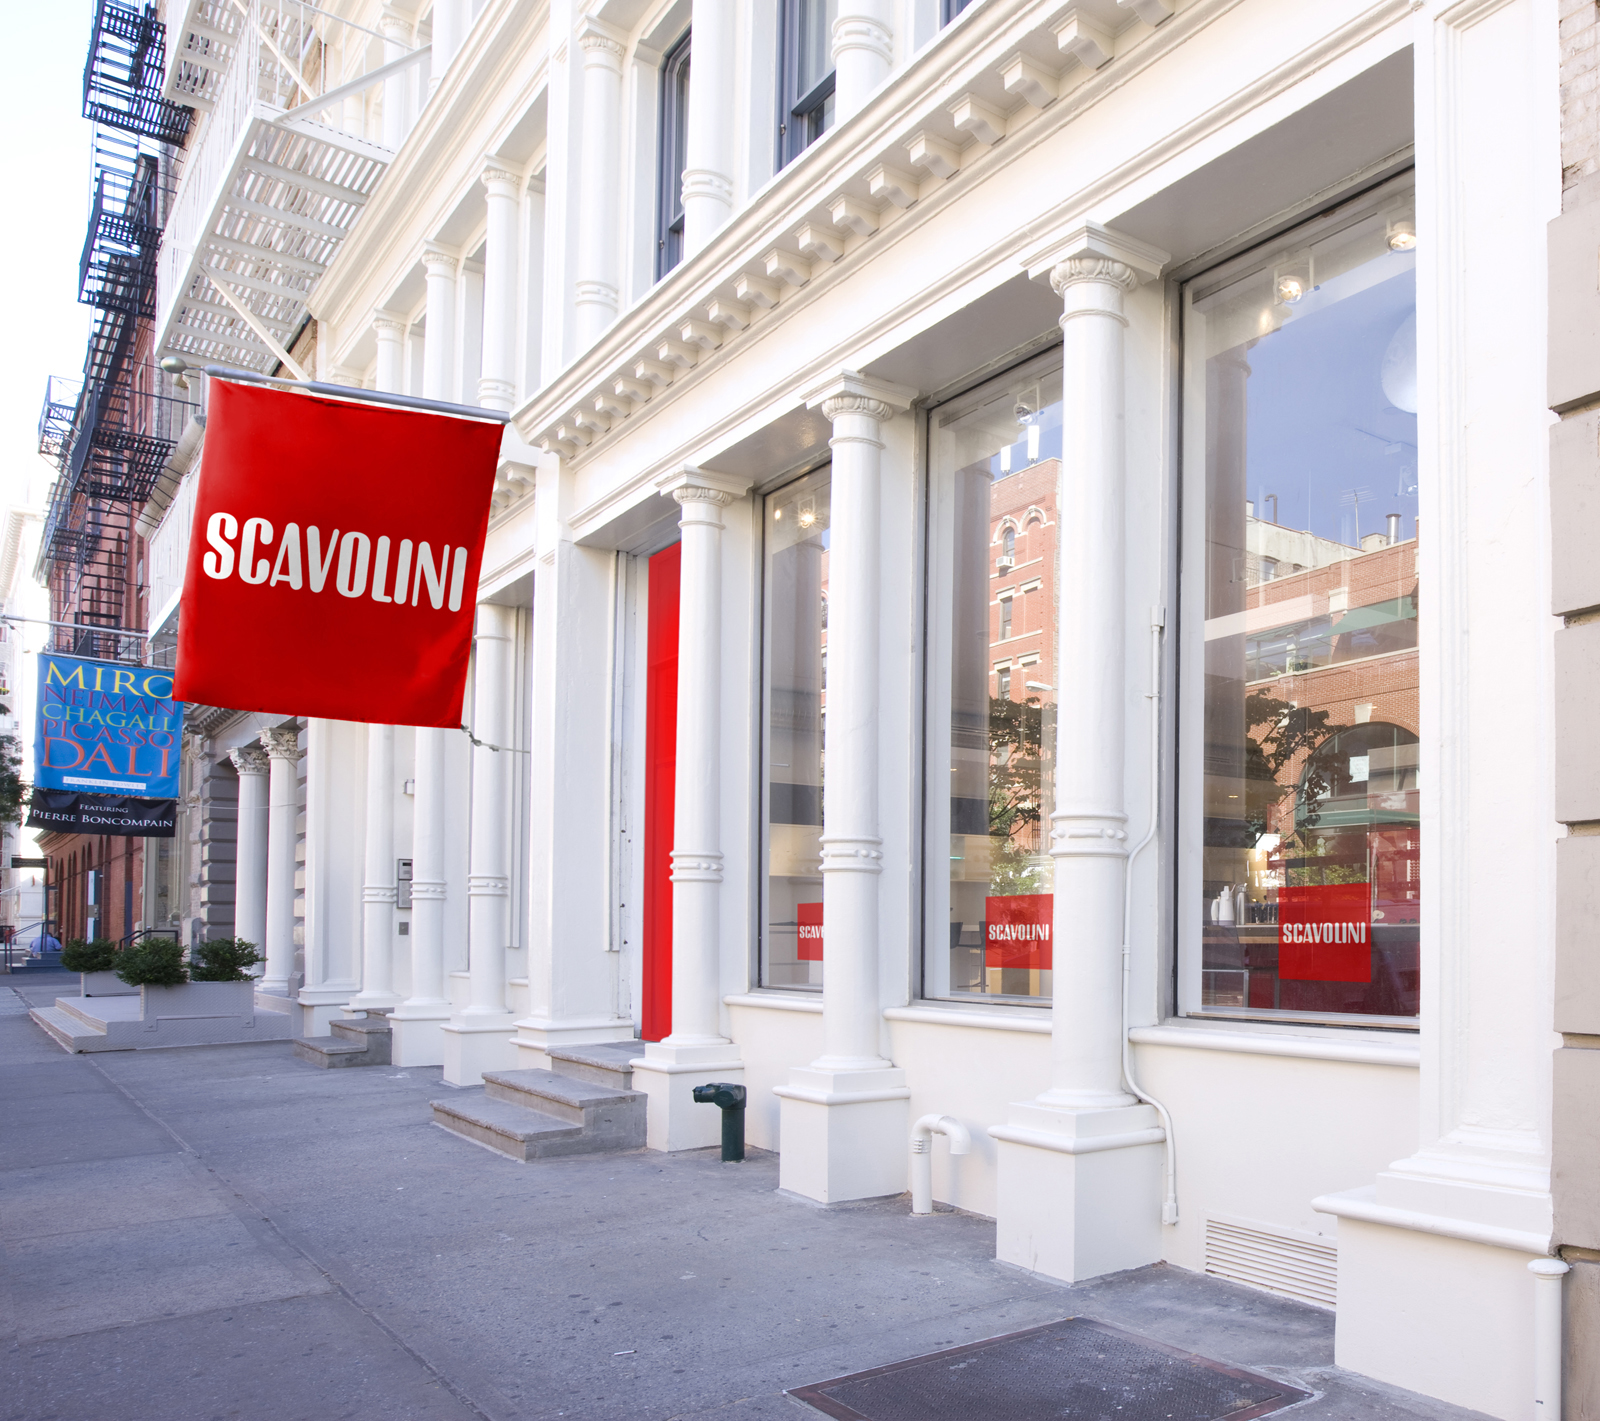 Scavolini's new showroom is located at 429 W Broadway, between Prince and Spring streets.